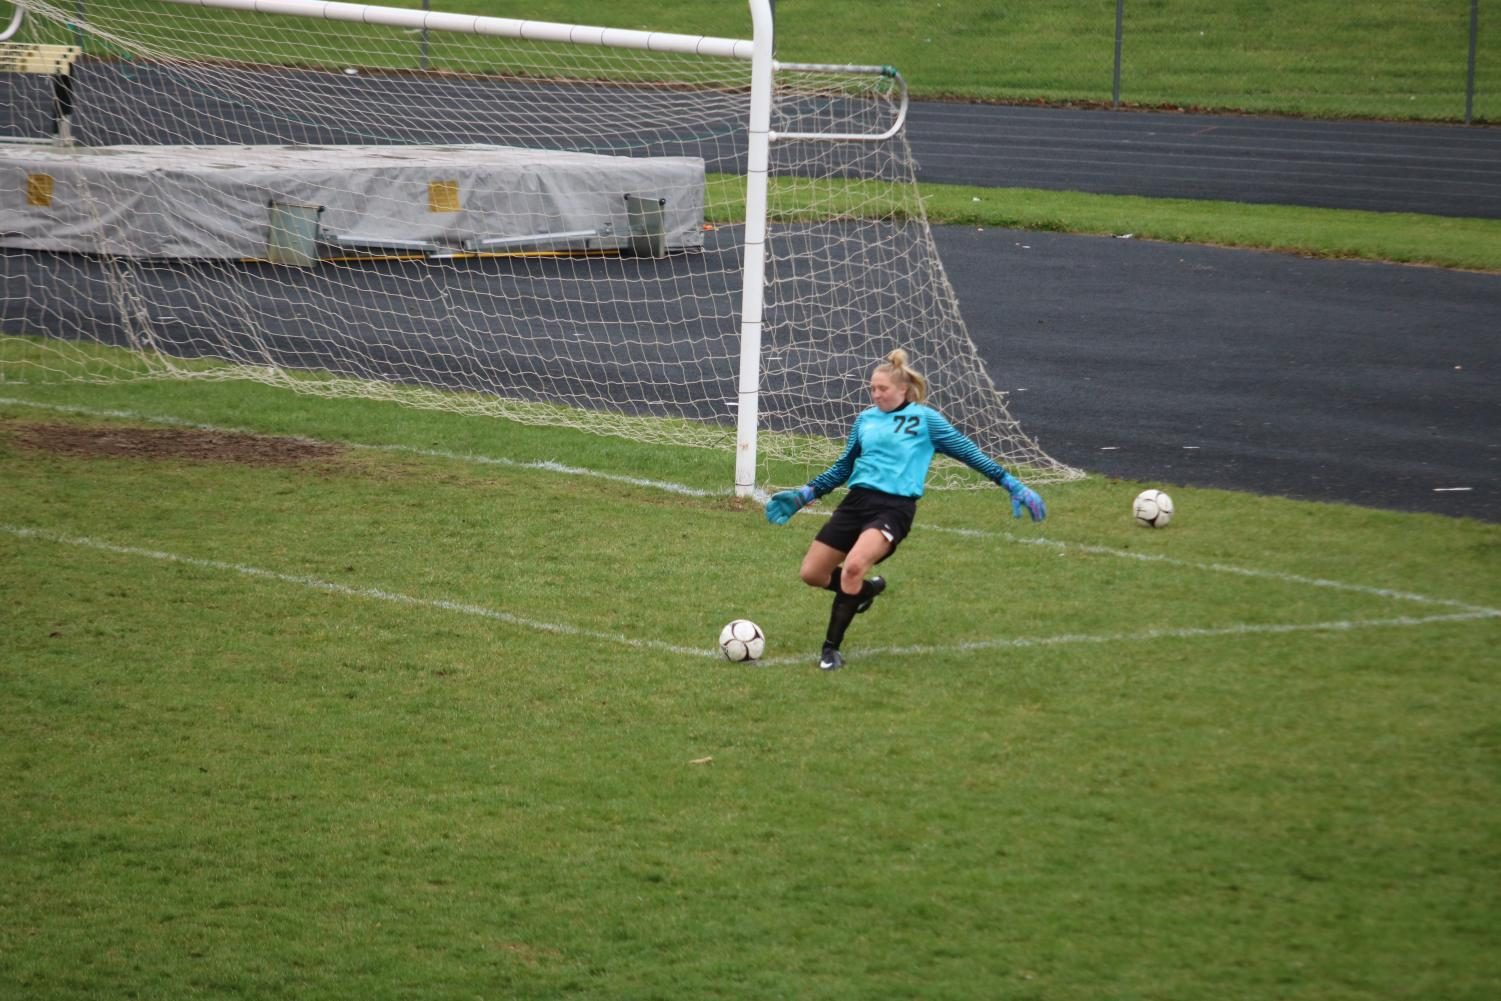 Junior Corri Pelzer boots the ball during a goal kick. Pelzer is the Varsity goalie this year.